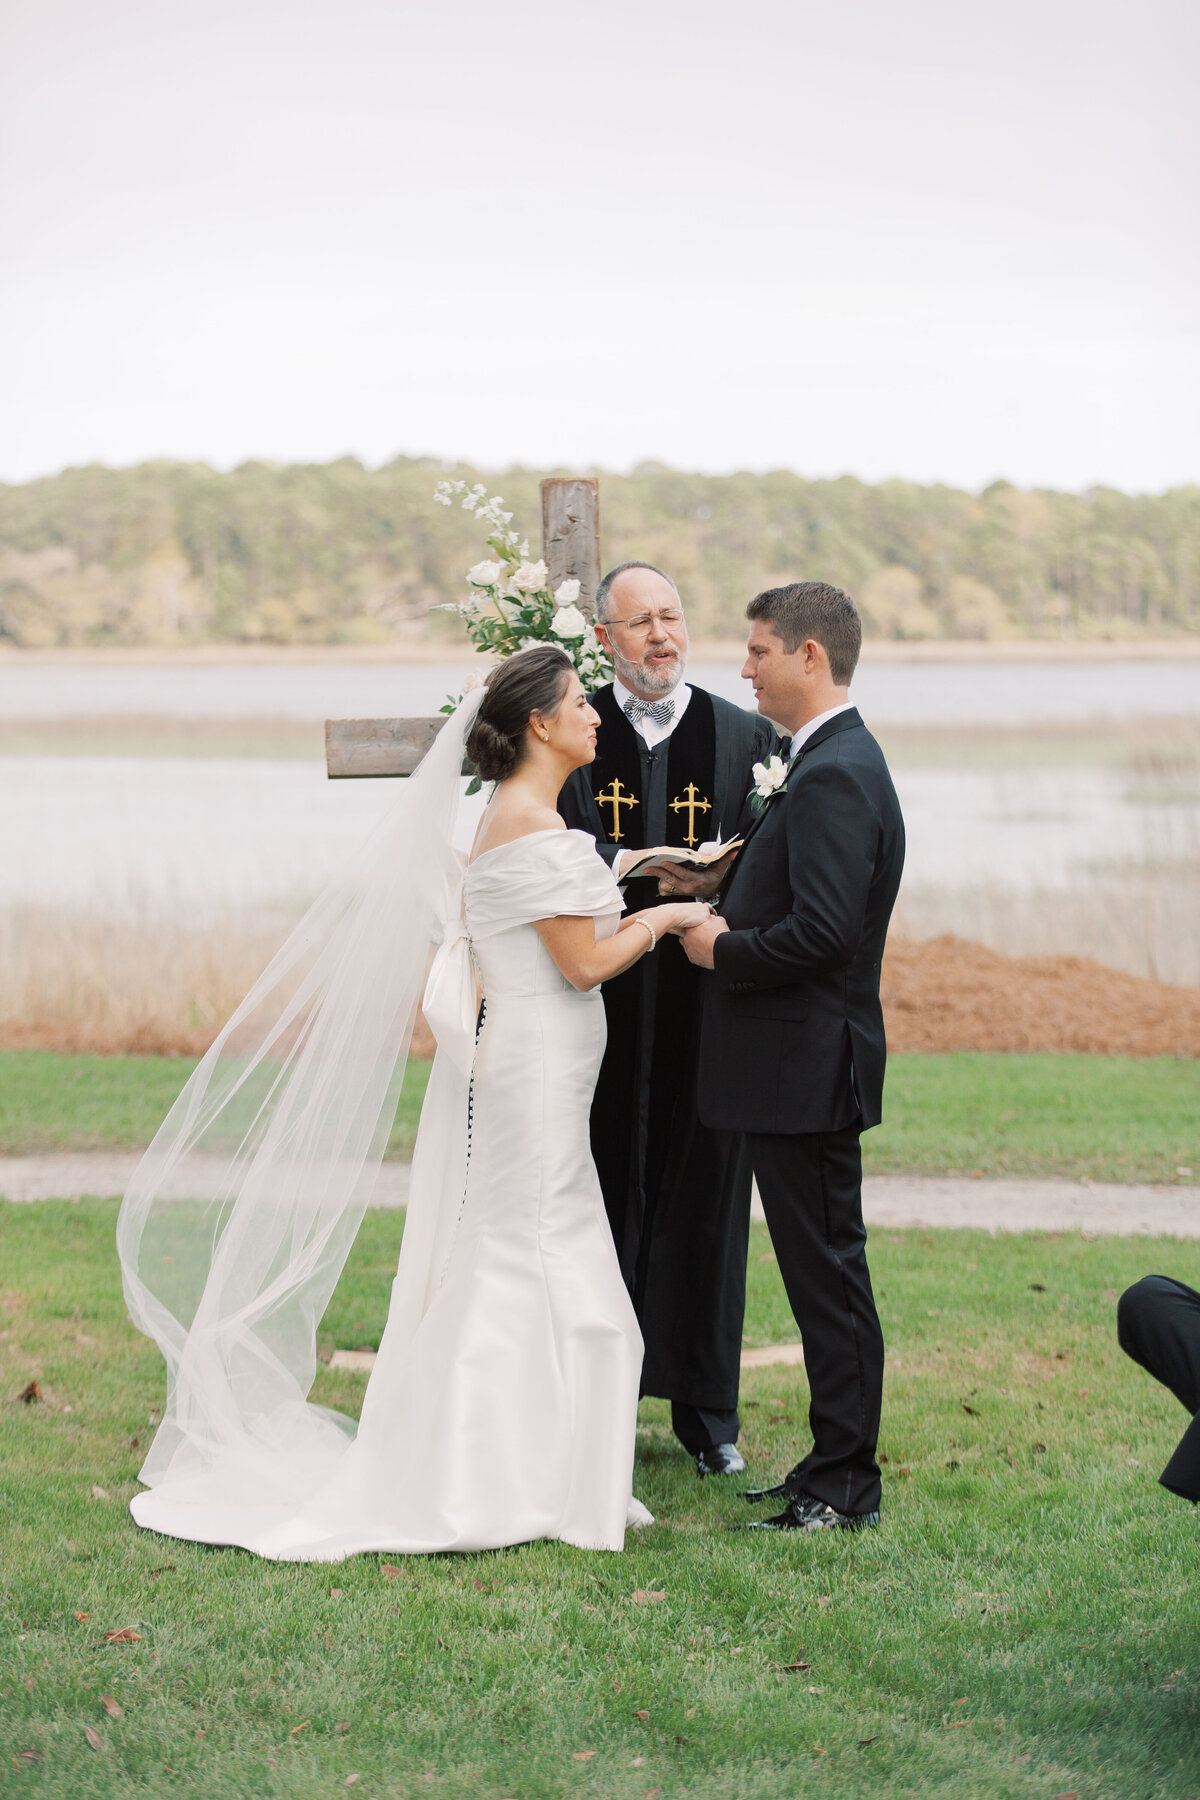 Powell_Oldfield_River_Club_Bluffton_South_Carolina_Beaufort_Savannah_Wedding_Jacksonville_Florida_Devon_Donnahoo_Photography_0584